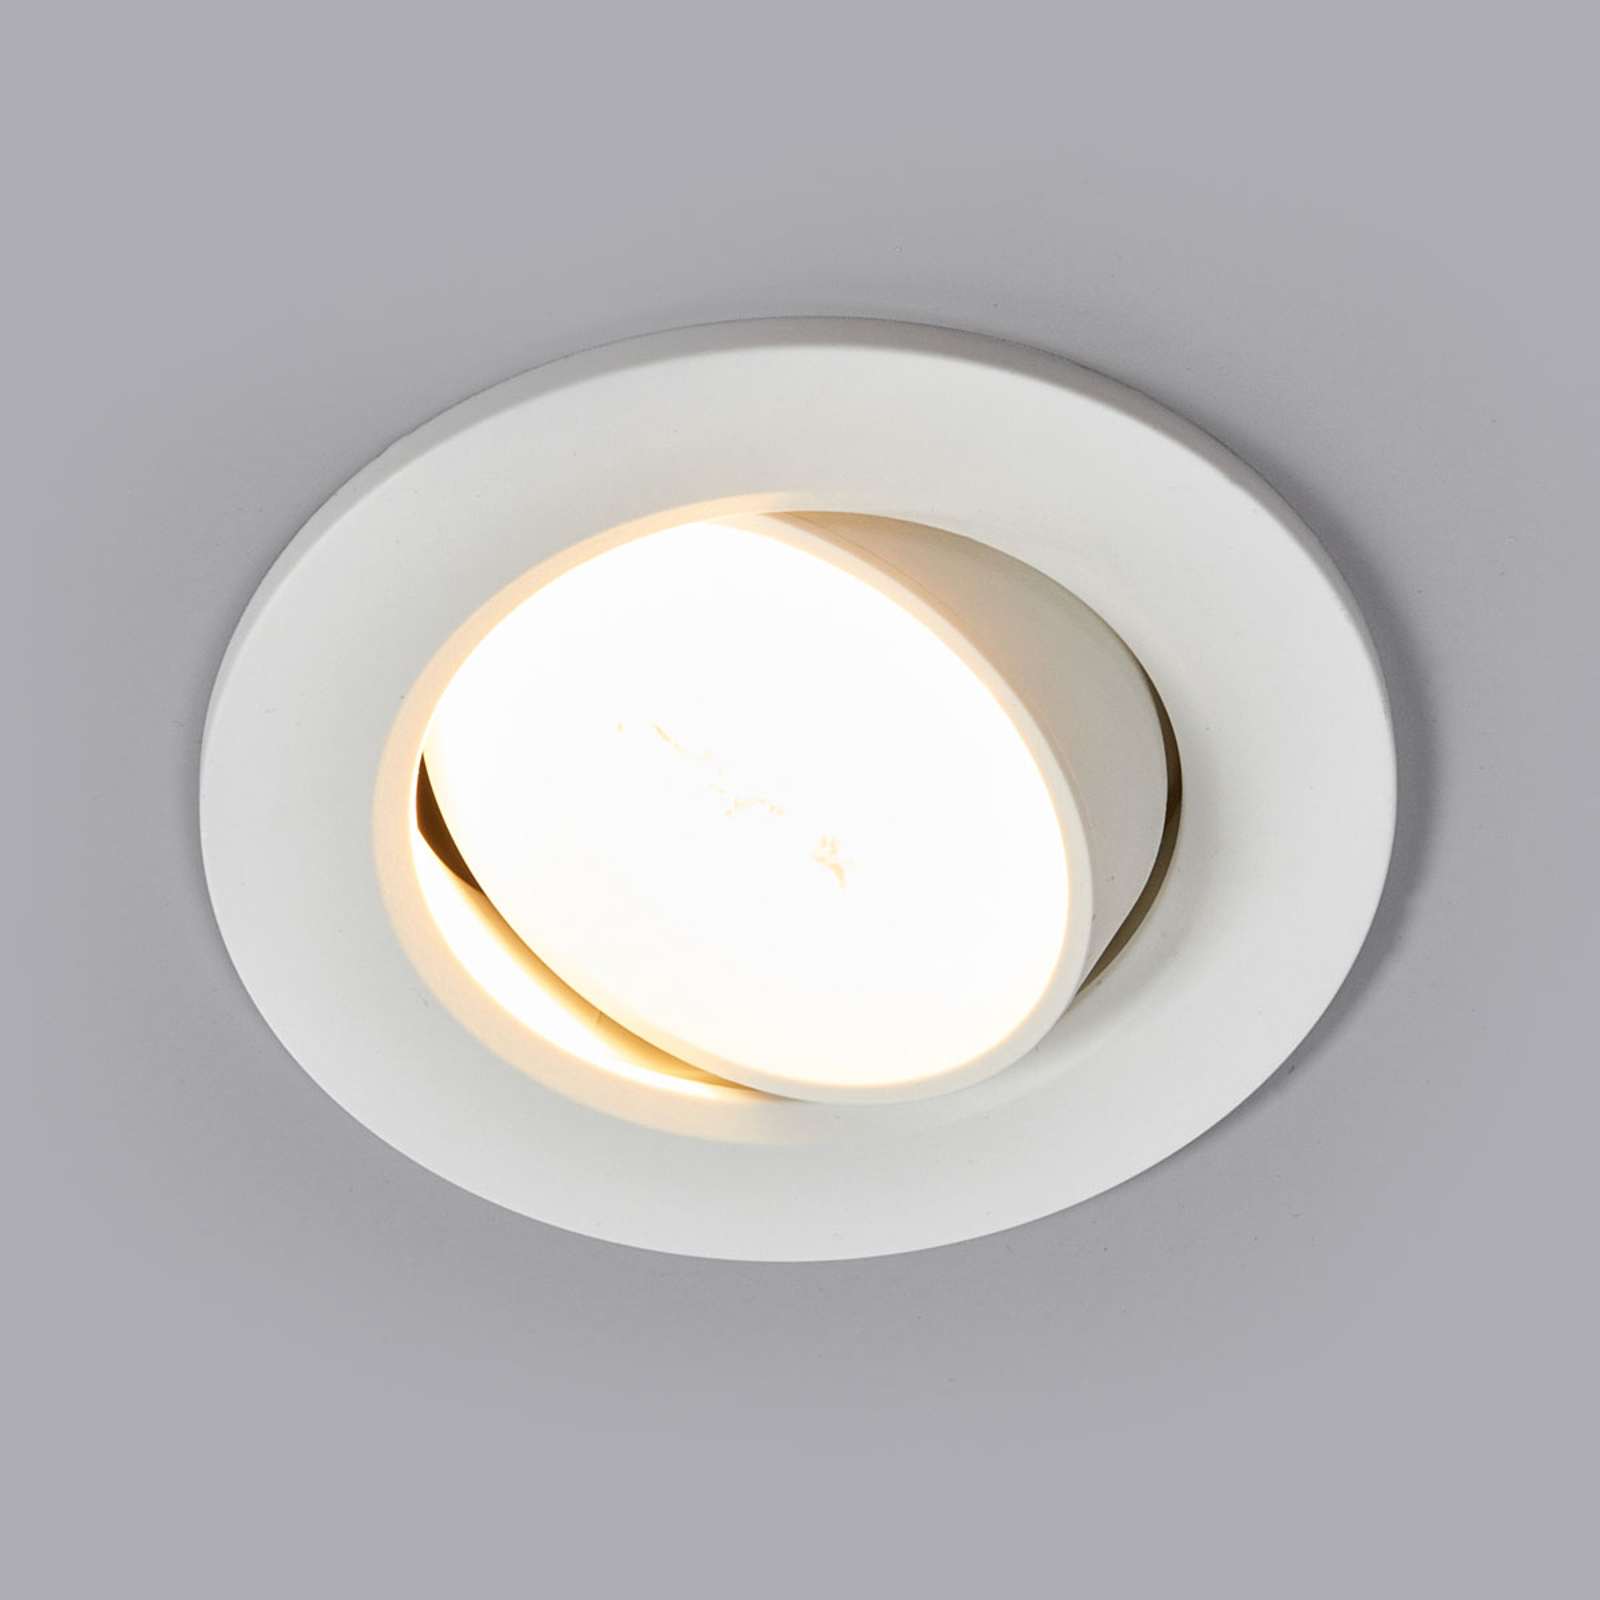 Quentin - LED recessed light in white_9978038_1